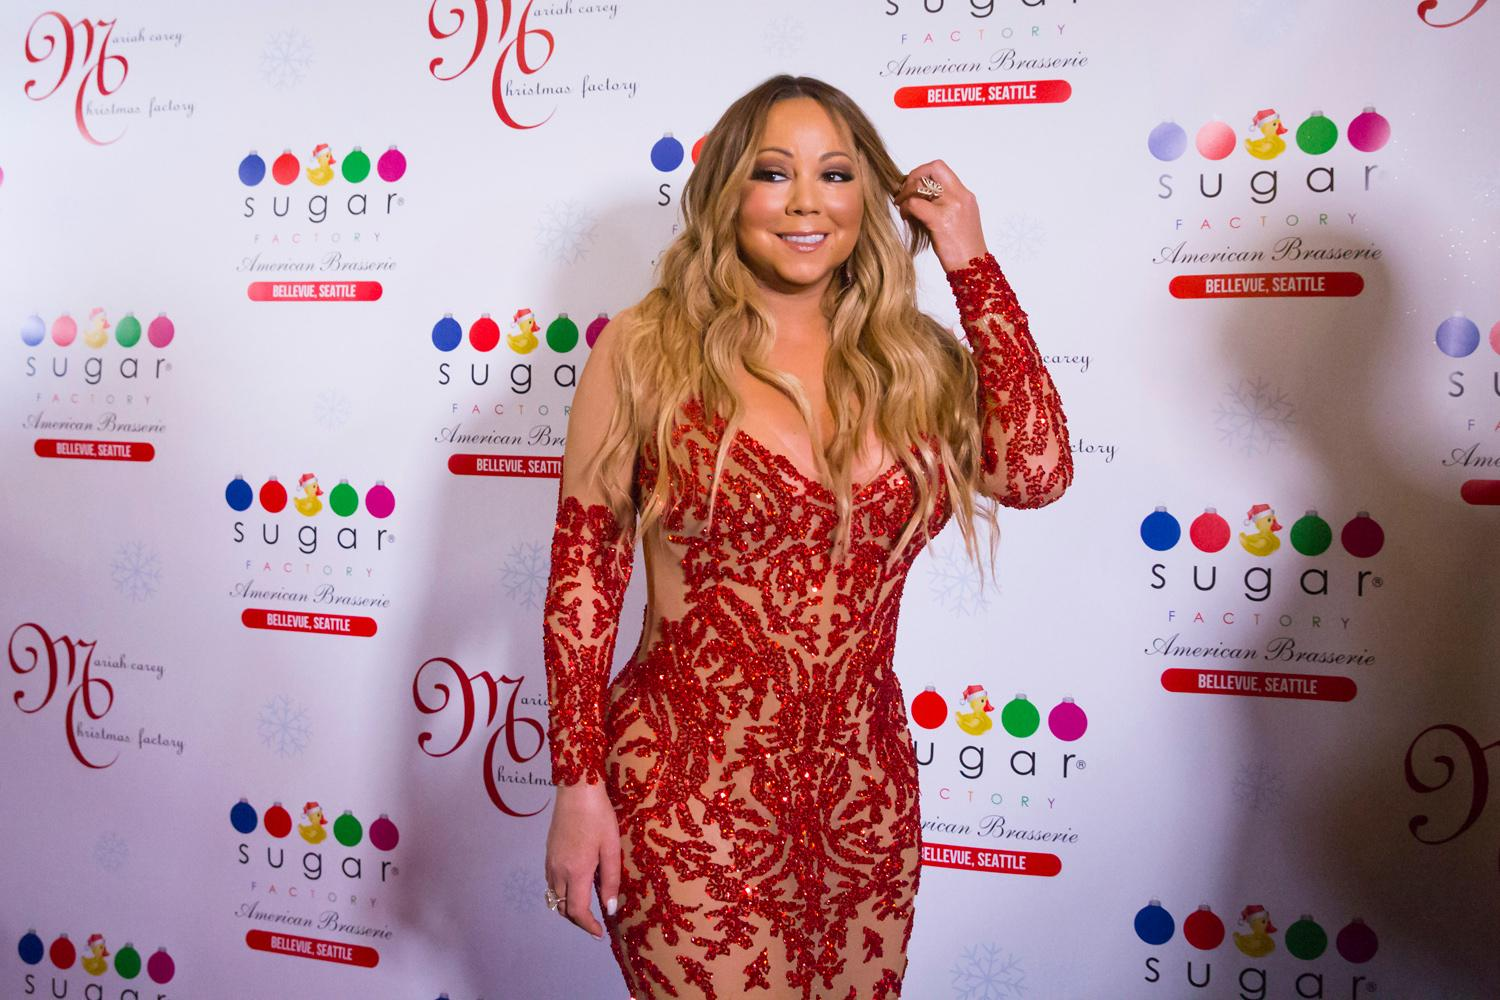 The Queen Diva herself, Ms. Mariah Carey, was on-hand at Sugar Factory in Bellevue last night (September 6, 2017), to debut her new Christmas-themed candy line for the company. Carey is in town as part of her tour with Lionel Ritchie - they played the KeyArena earlier in the week. Mariah Carey Christmas Factory will feature a Christmas themed retail and candy line, curated by Mariah, herself. Mariah Carey Christmas Factory sneak peek items will be available for sale in Seattle starting Wednesday, September 6 and available for purchase online by the end of September. The entire line of more than 100 retail and candy items including t-shirts and other custom products will be available across retail stores nationwide starting November 1, just in time for the holidays. (Sy Bean / Seattle Refined)